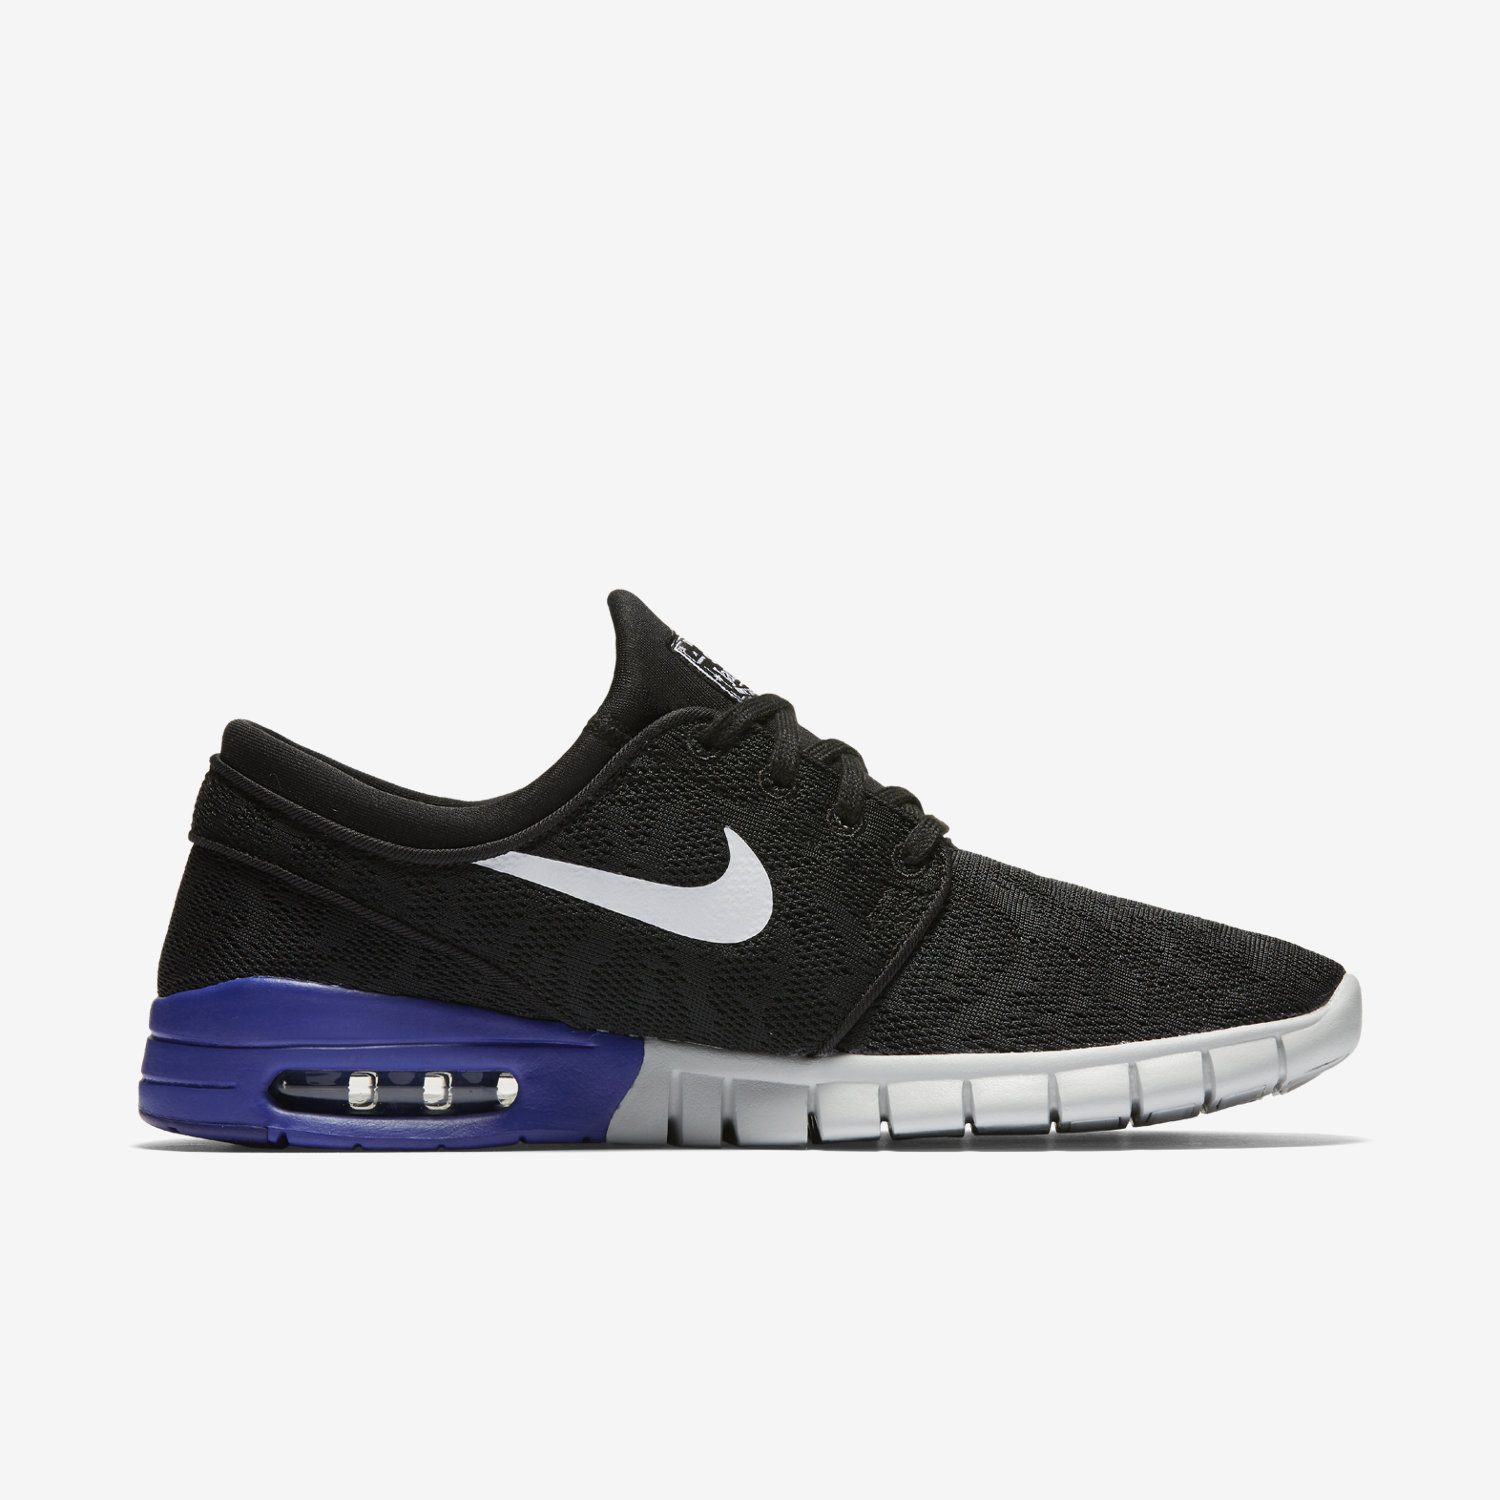 stefan janoski max nike. Black Bedroom Furniture Sets. Home Design Ideas